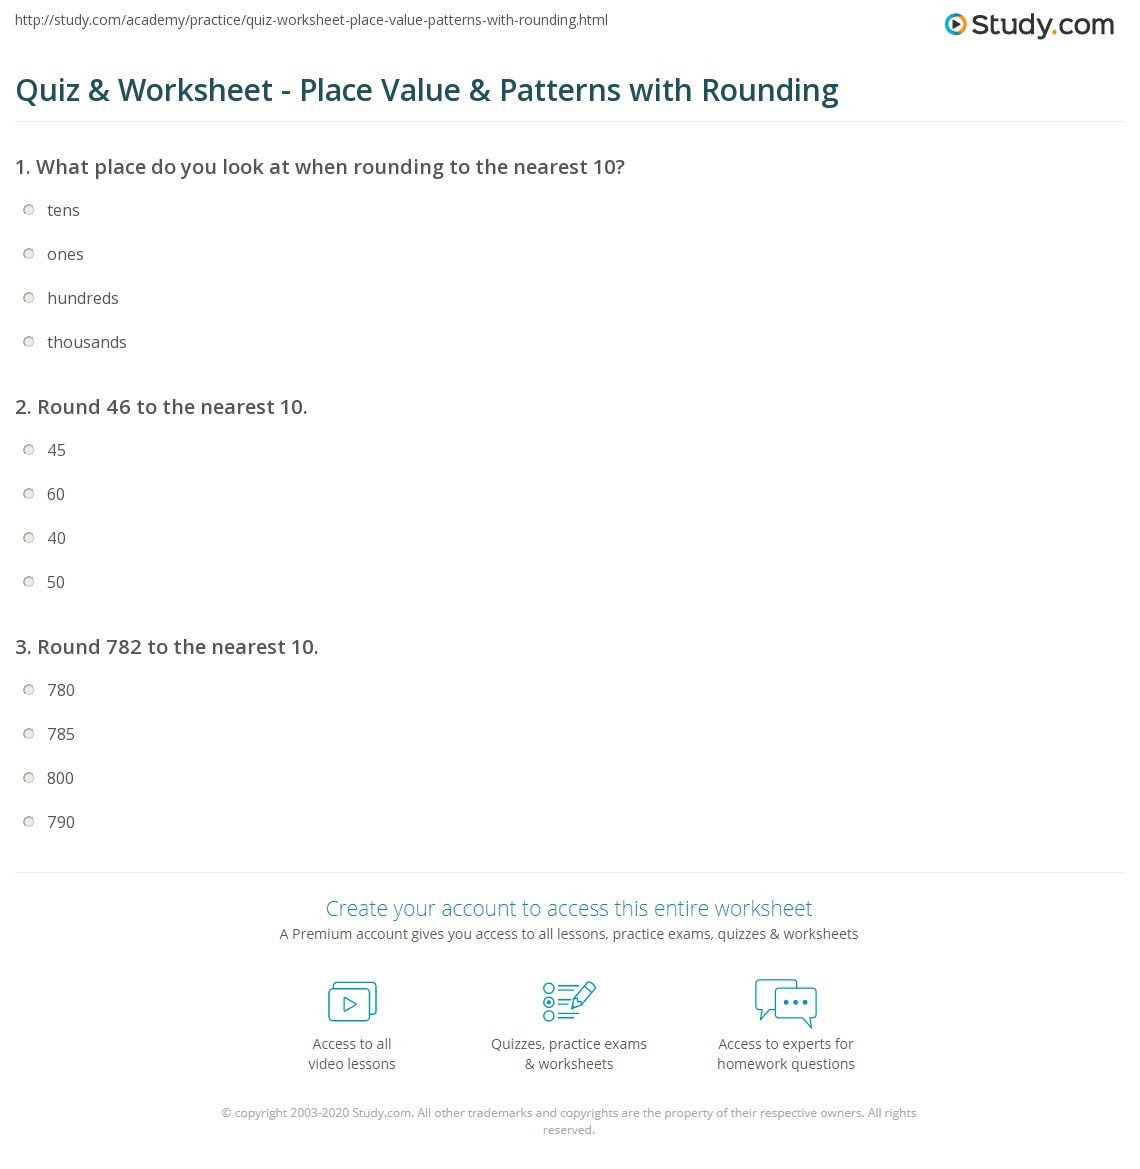 quiz worksheet place value patterns with rounding study